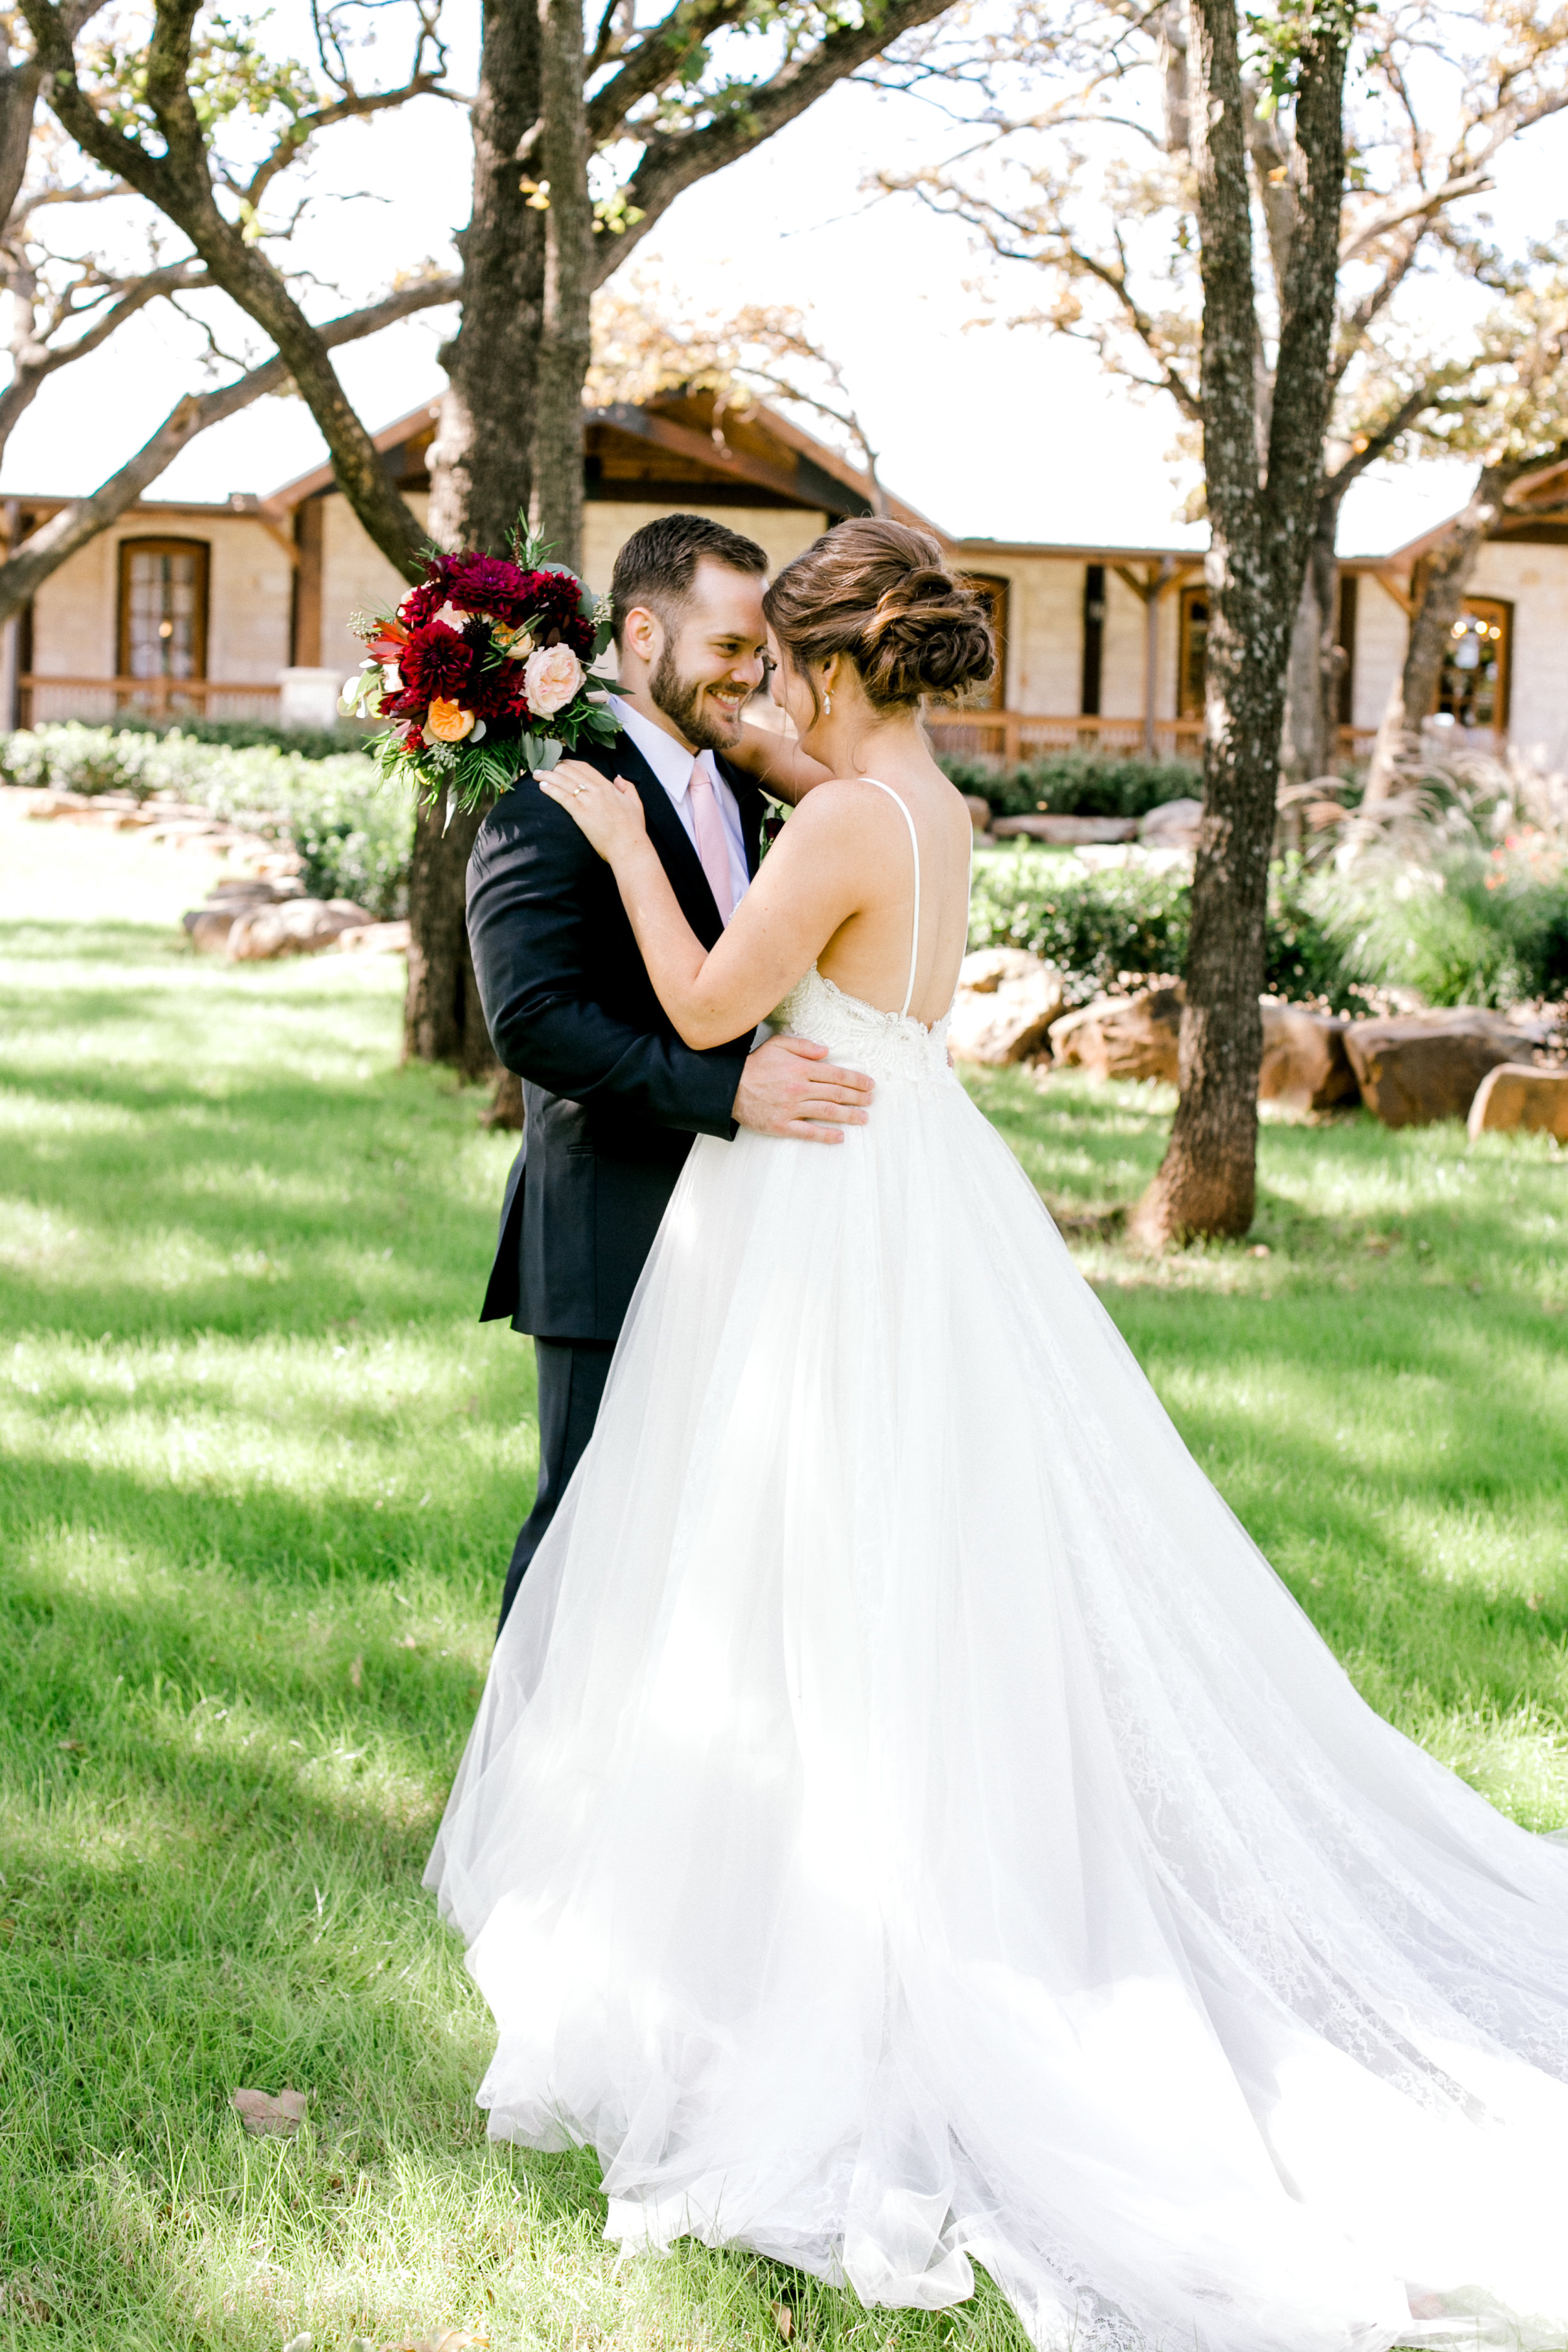 Natalie-and-Trent-Wedding-Day-THE-SPRINGS-EVENT-VENUE-Norman-Oklahoma-by-Emily-Nicole-Photo-265.jpg